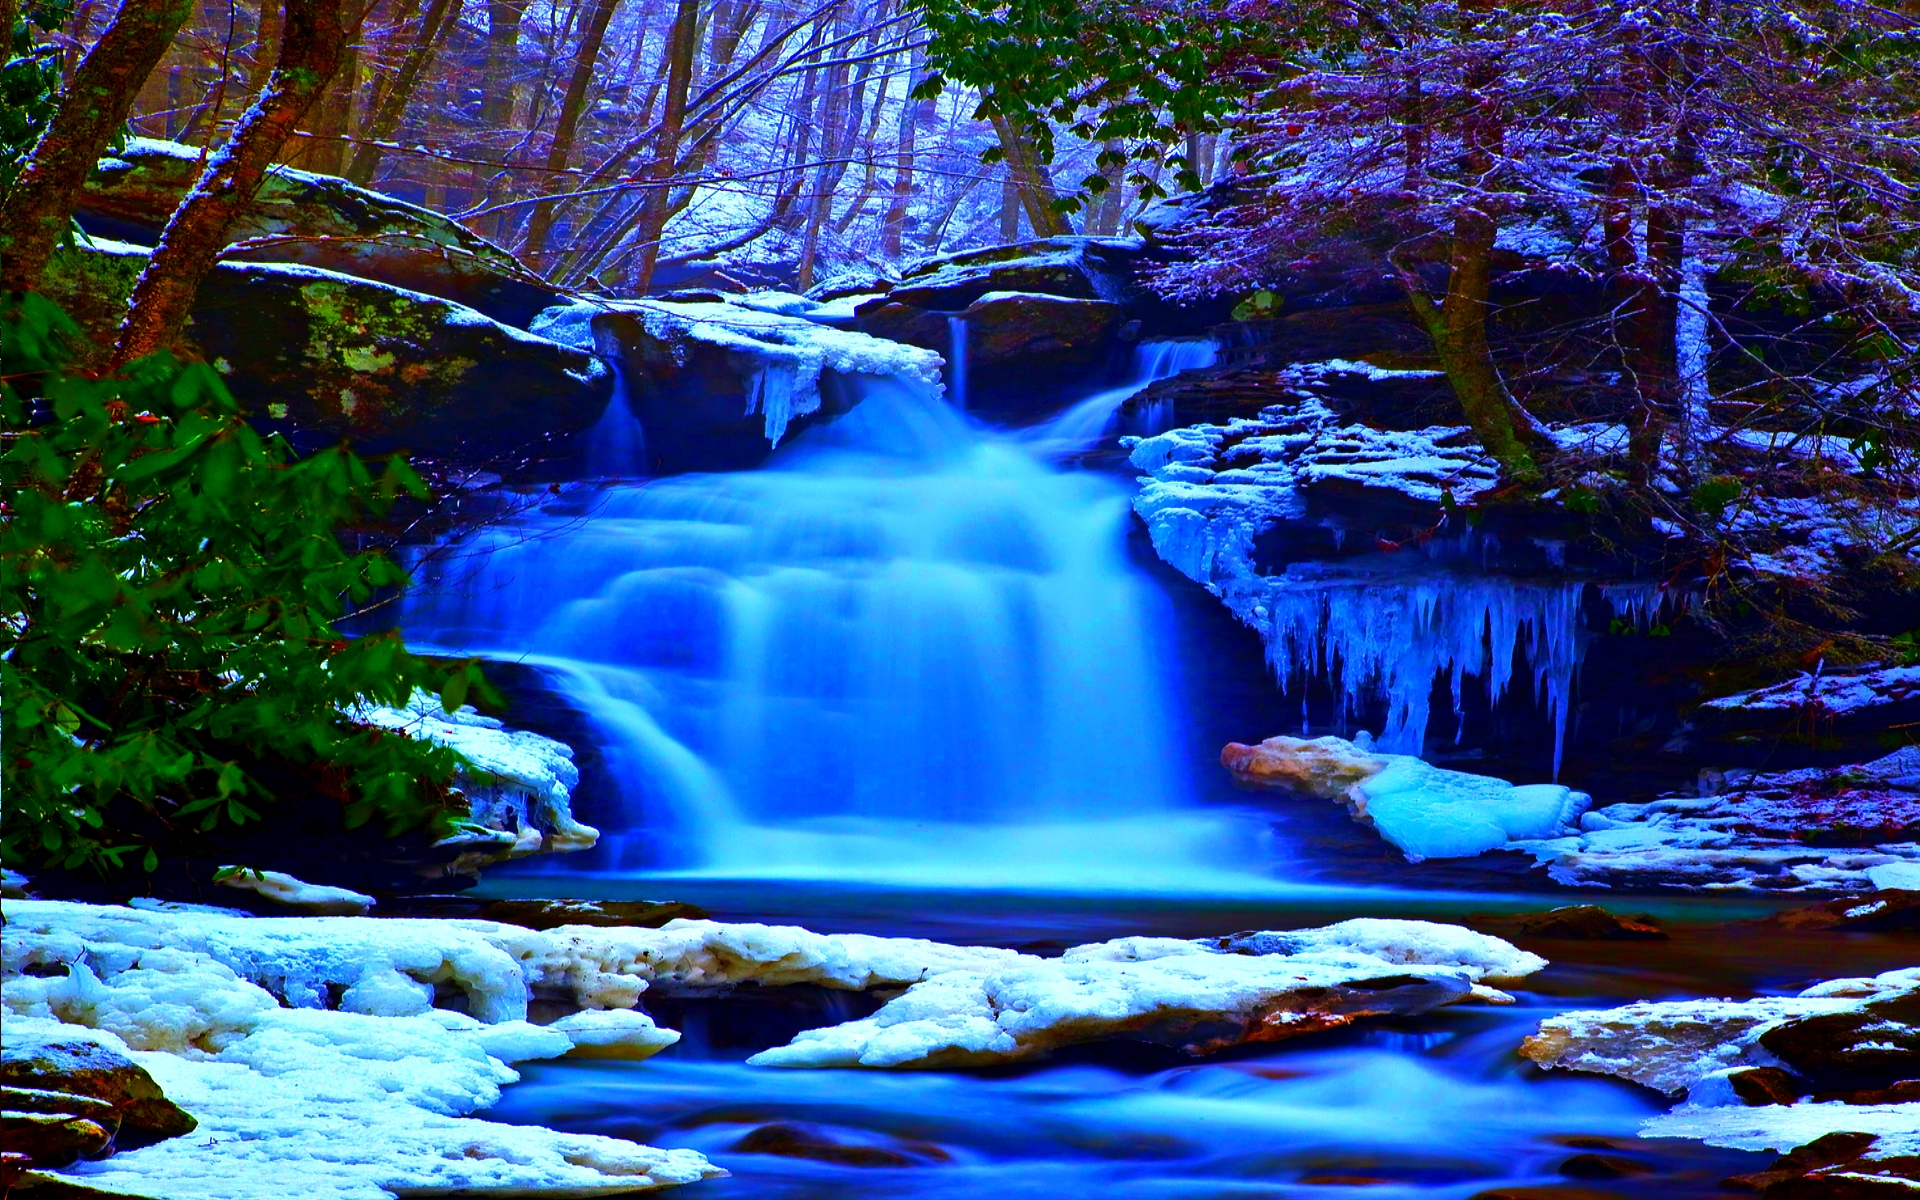 cascadas de invierno wallpaper   ForWallpapercom 1920x1200